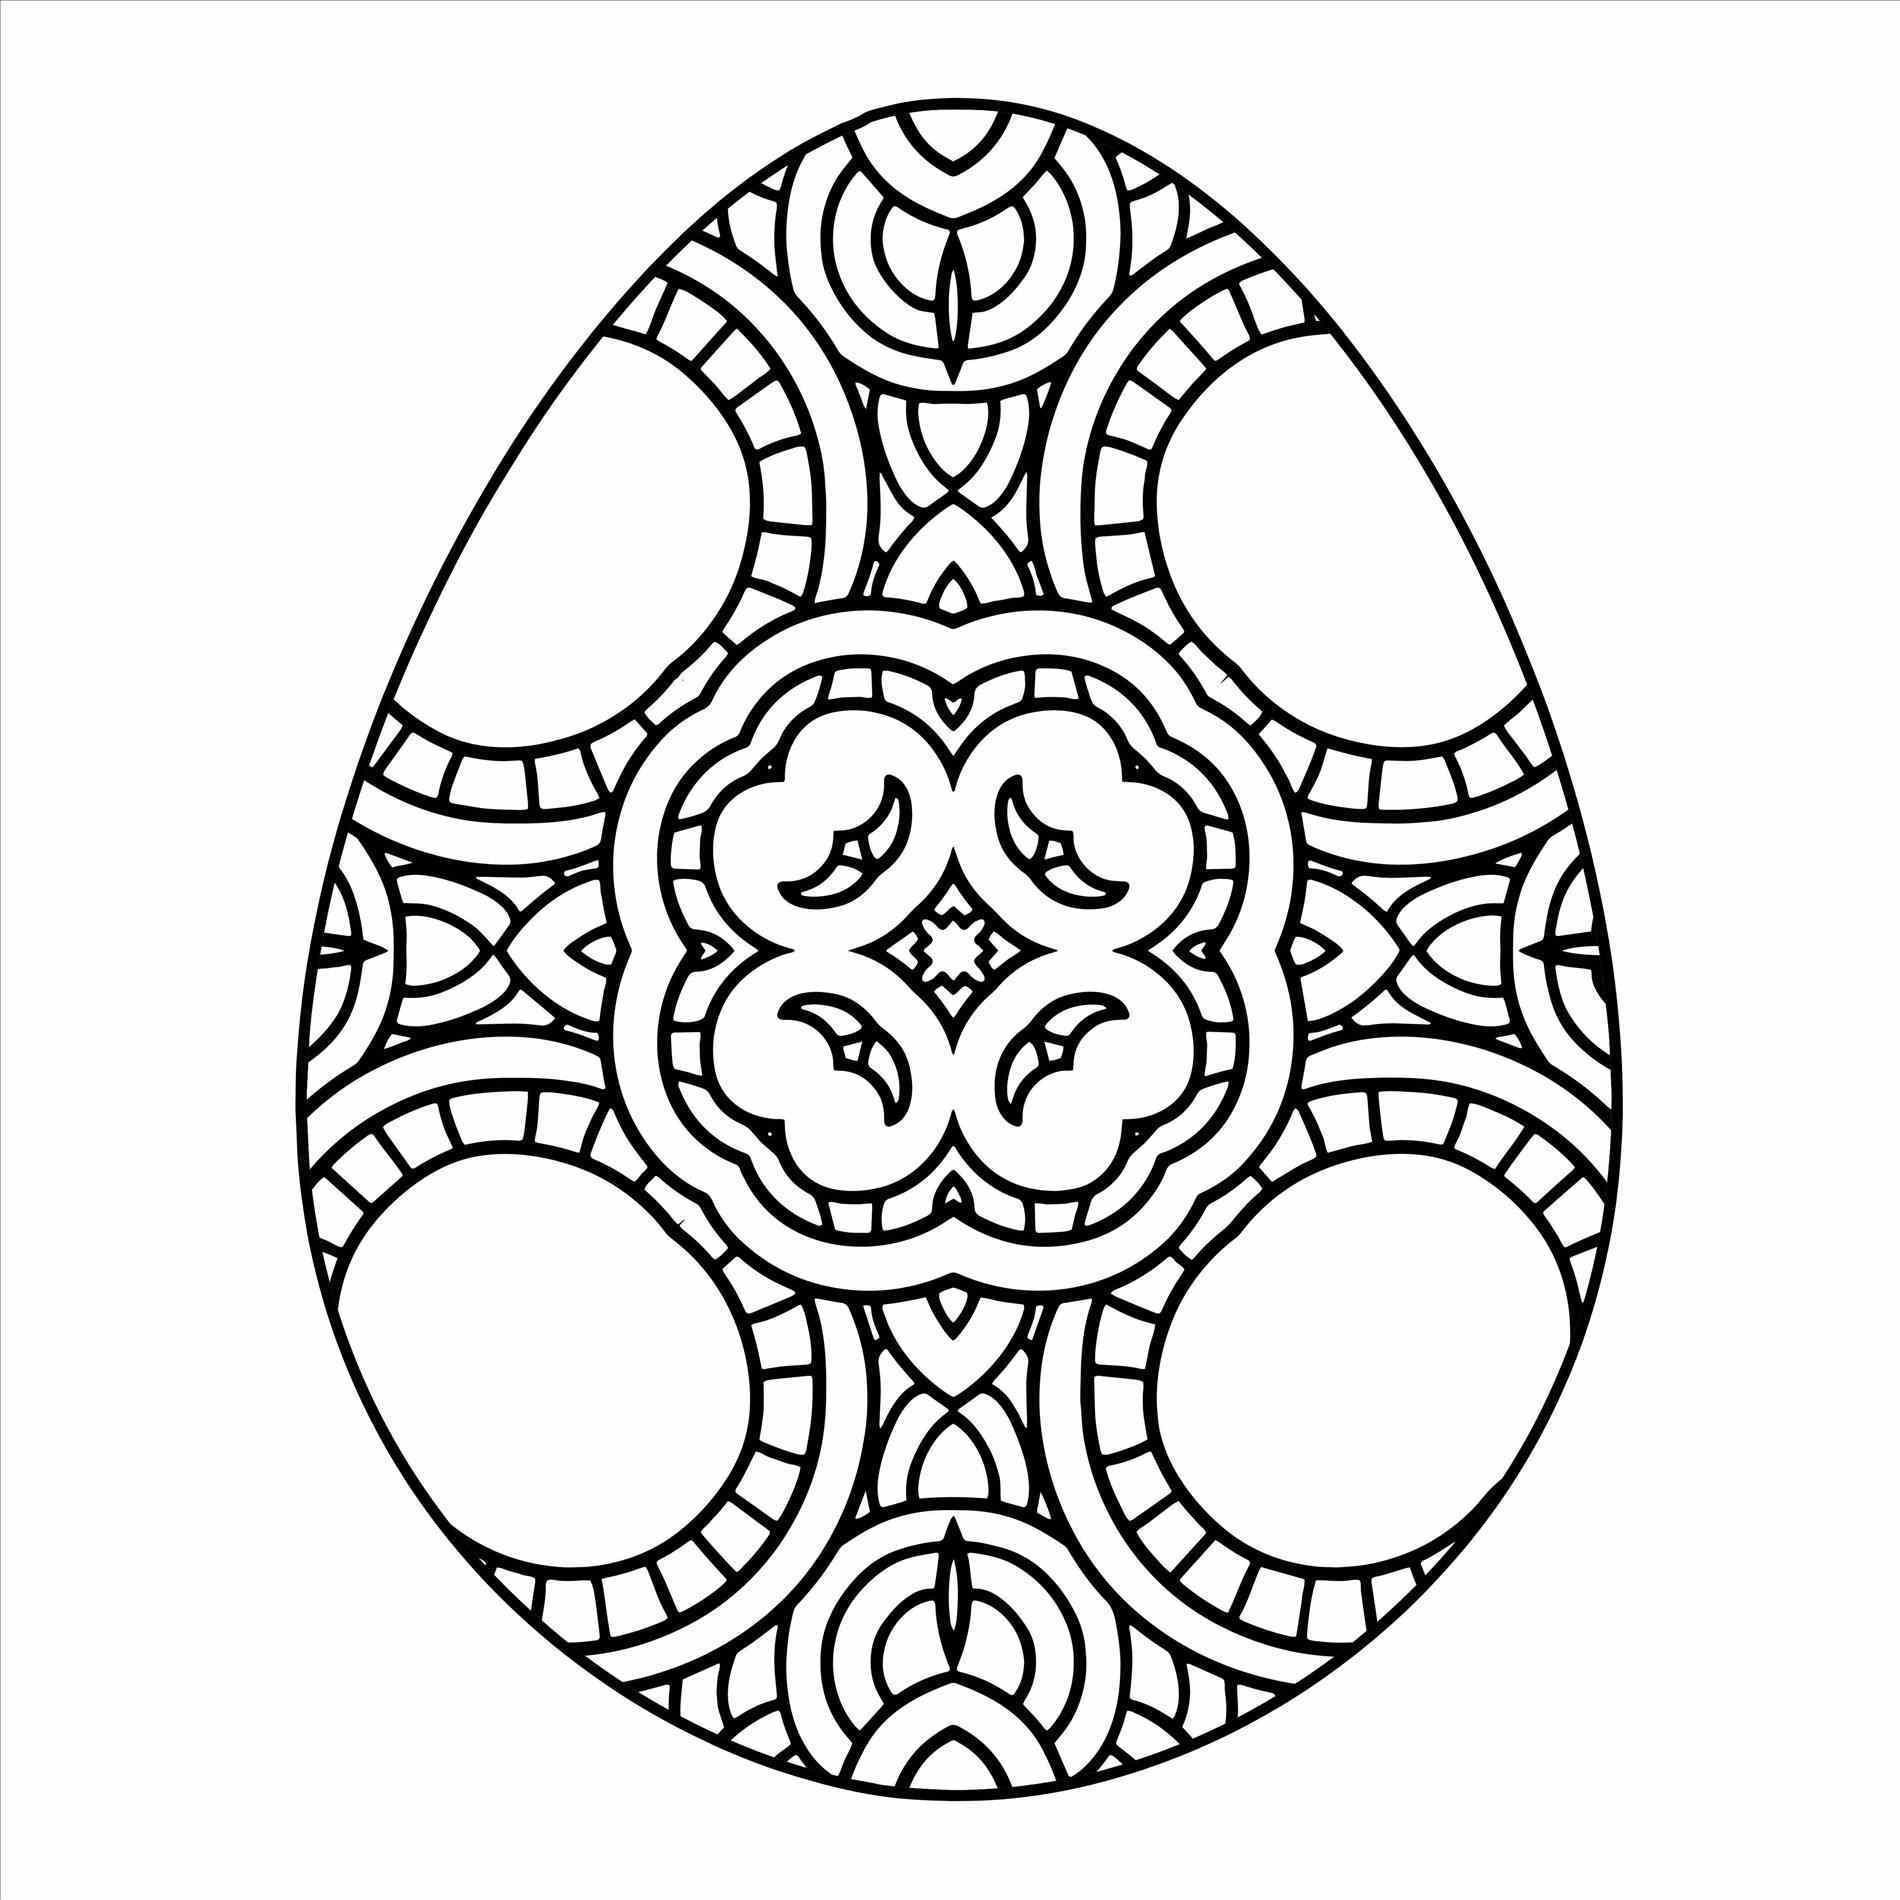 Easter Egg Coloring Pages For Adults At Getcolorings